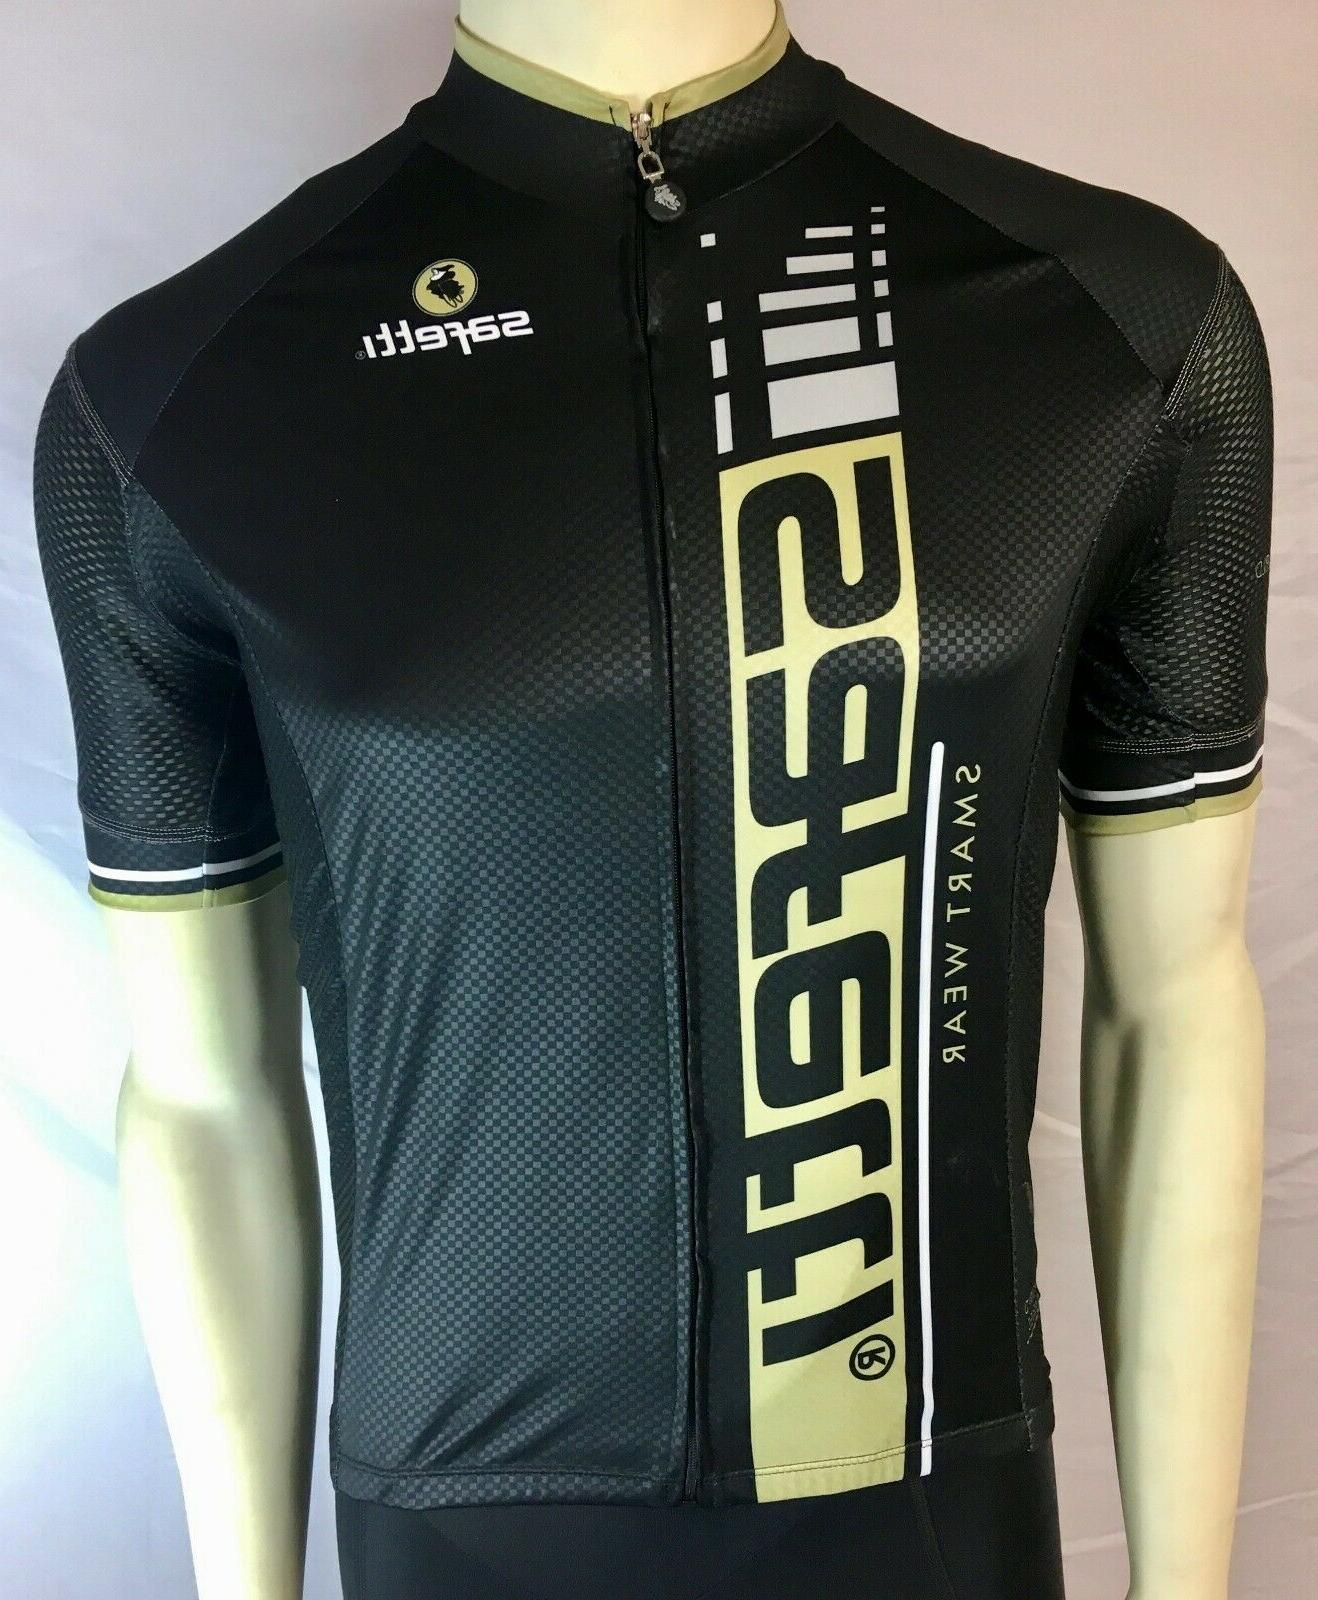 Safetti Men's Cycling SS Jersey Size Medium Black/Gold